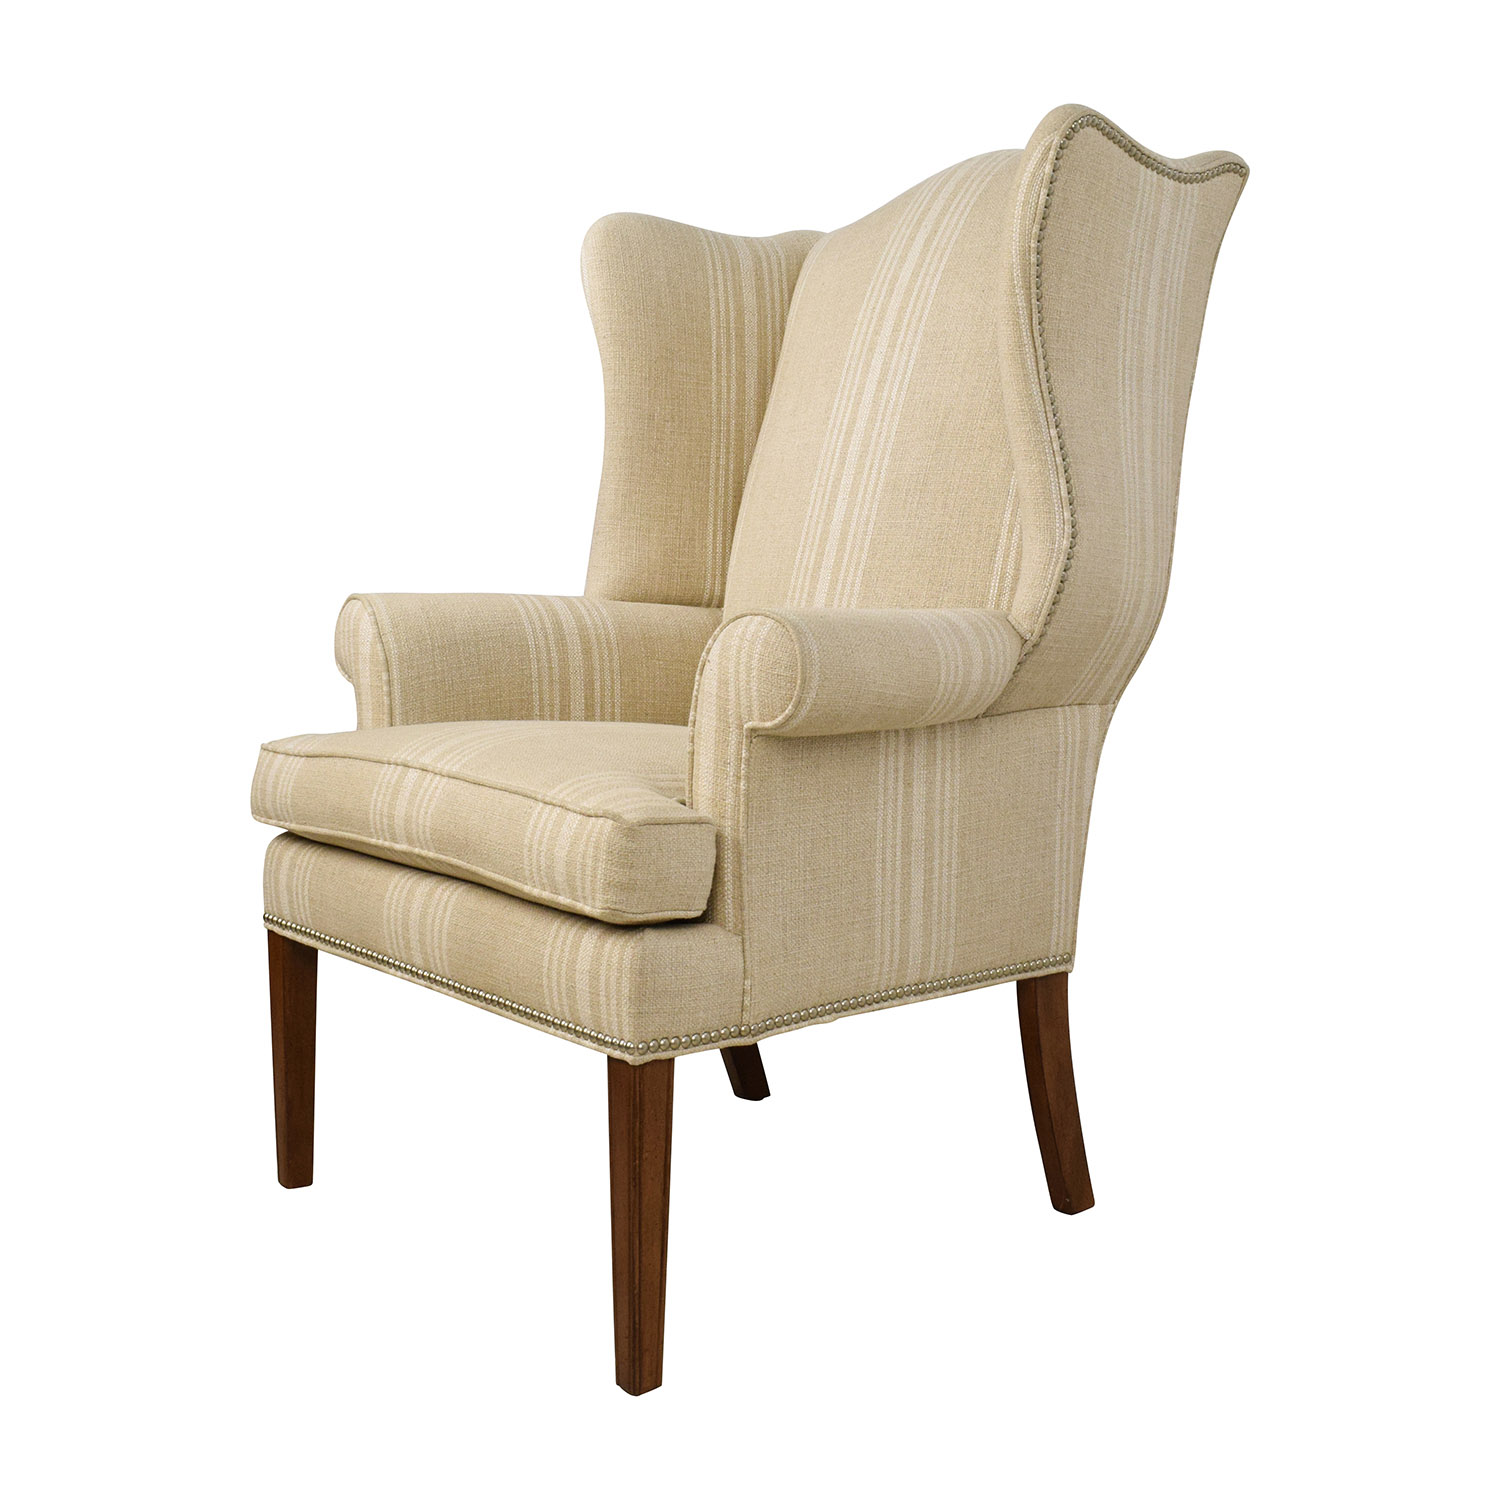 ethan allen recliners chairs dining chair covers ikea 88 off skylar stripped wing